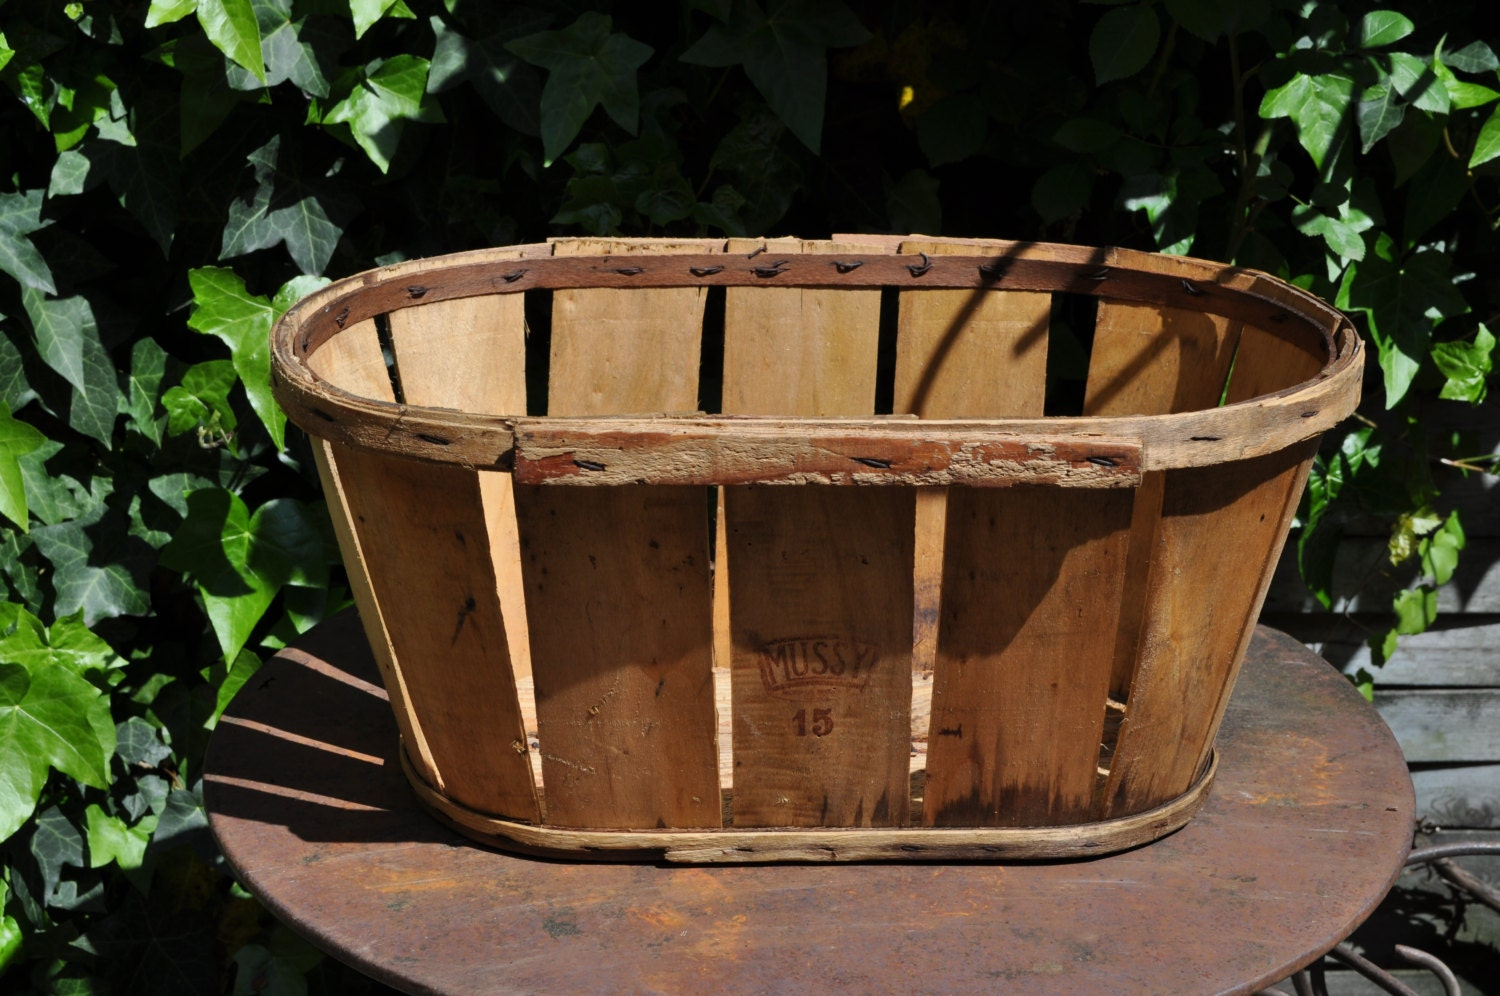 French antique wooden fruits crate french vintage wood crate for Wooden fruit crates